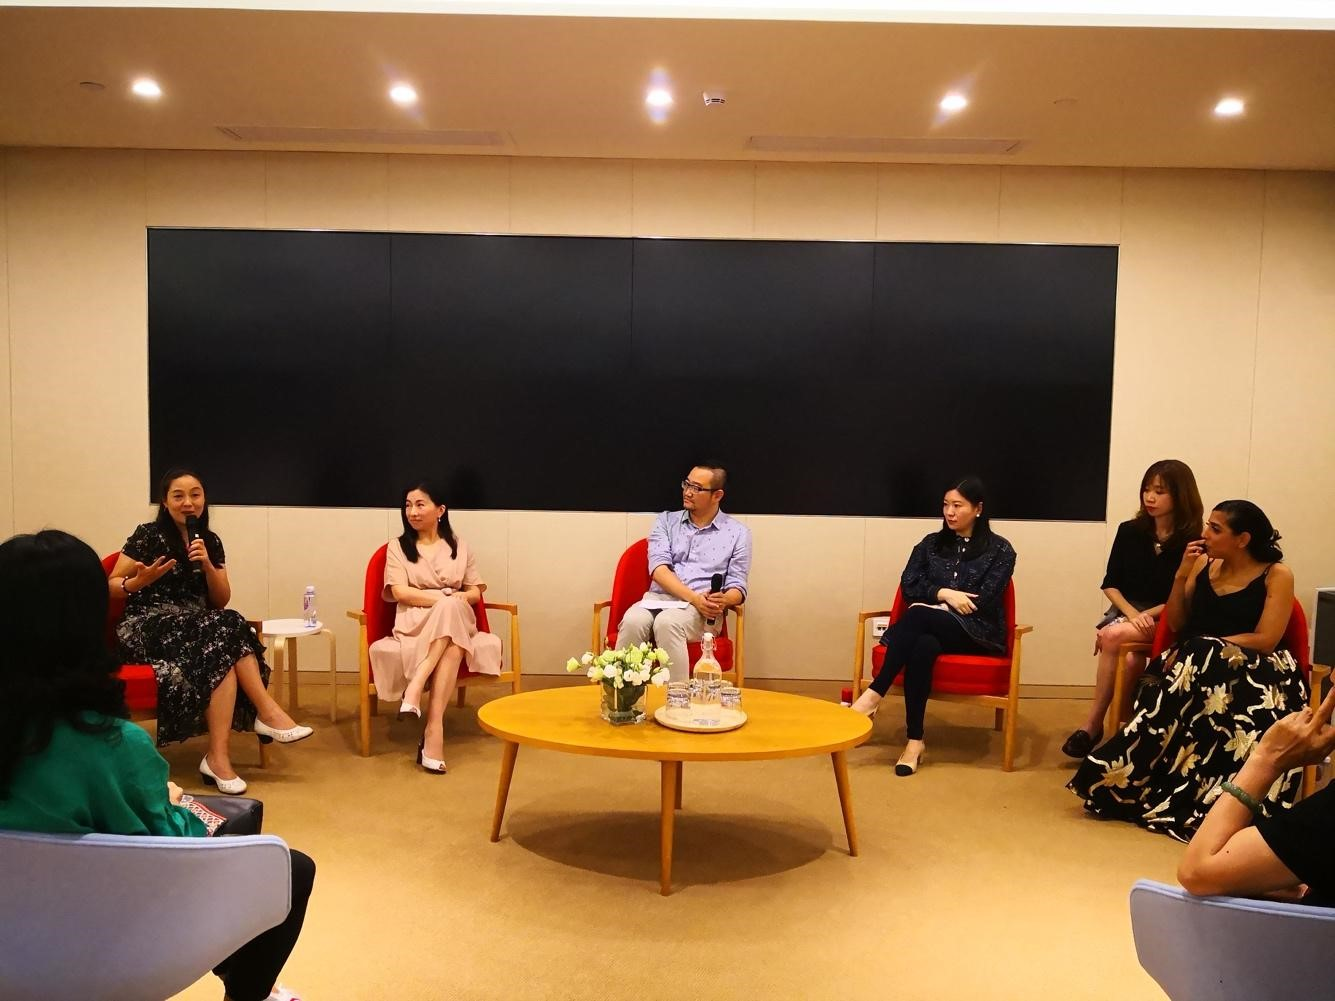 From left to right: Wang Xia, Shi Lan, Henry Zeng, Claire Yang, Translator, Lena Gidwani